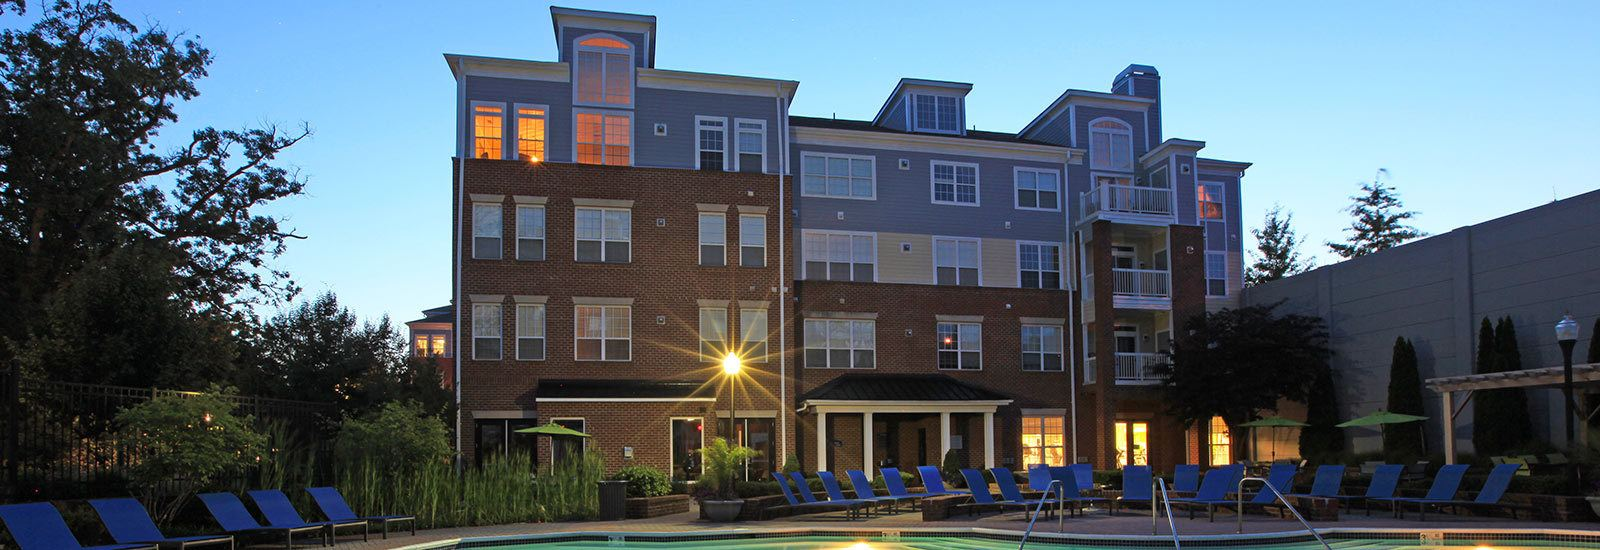 Apartments in bethesda MD